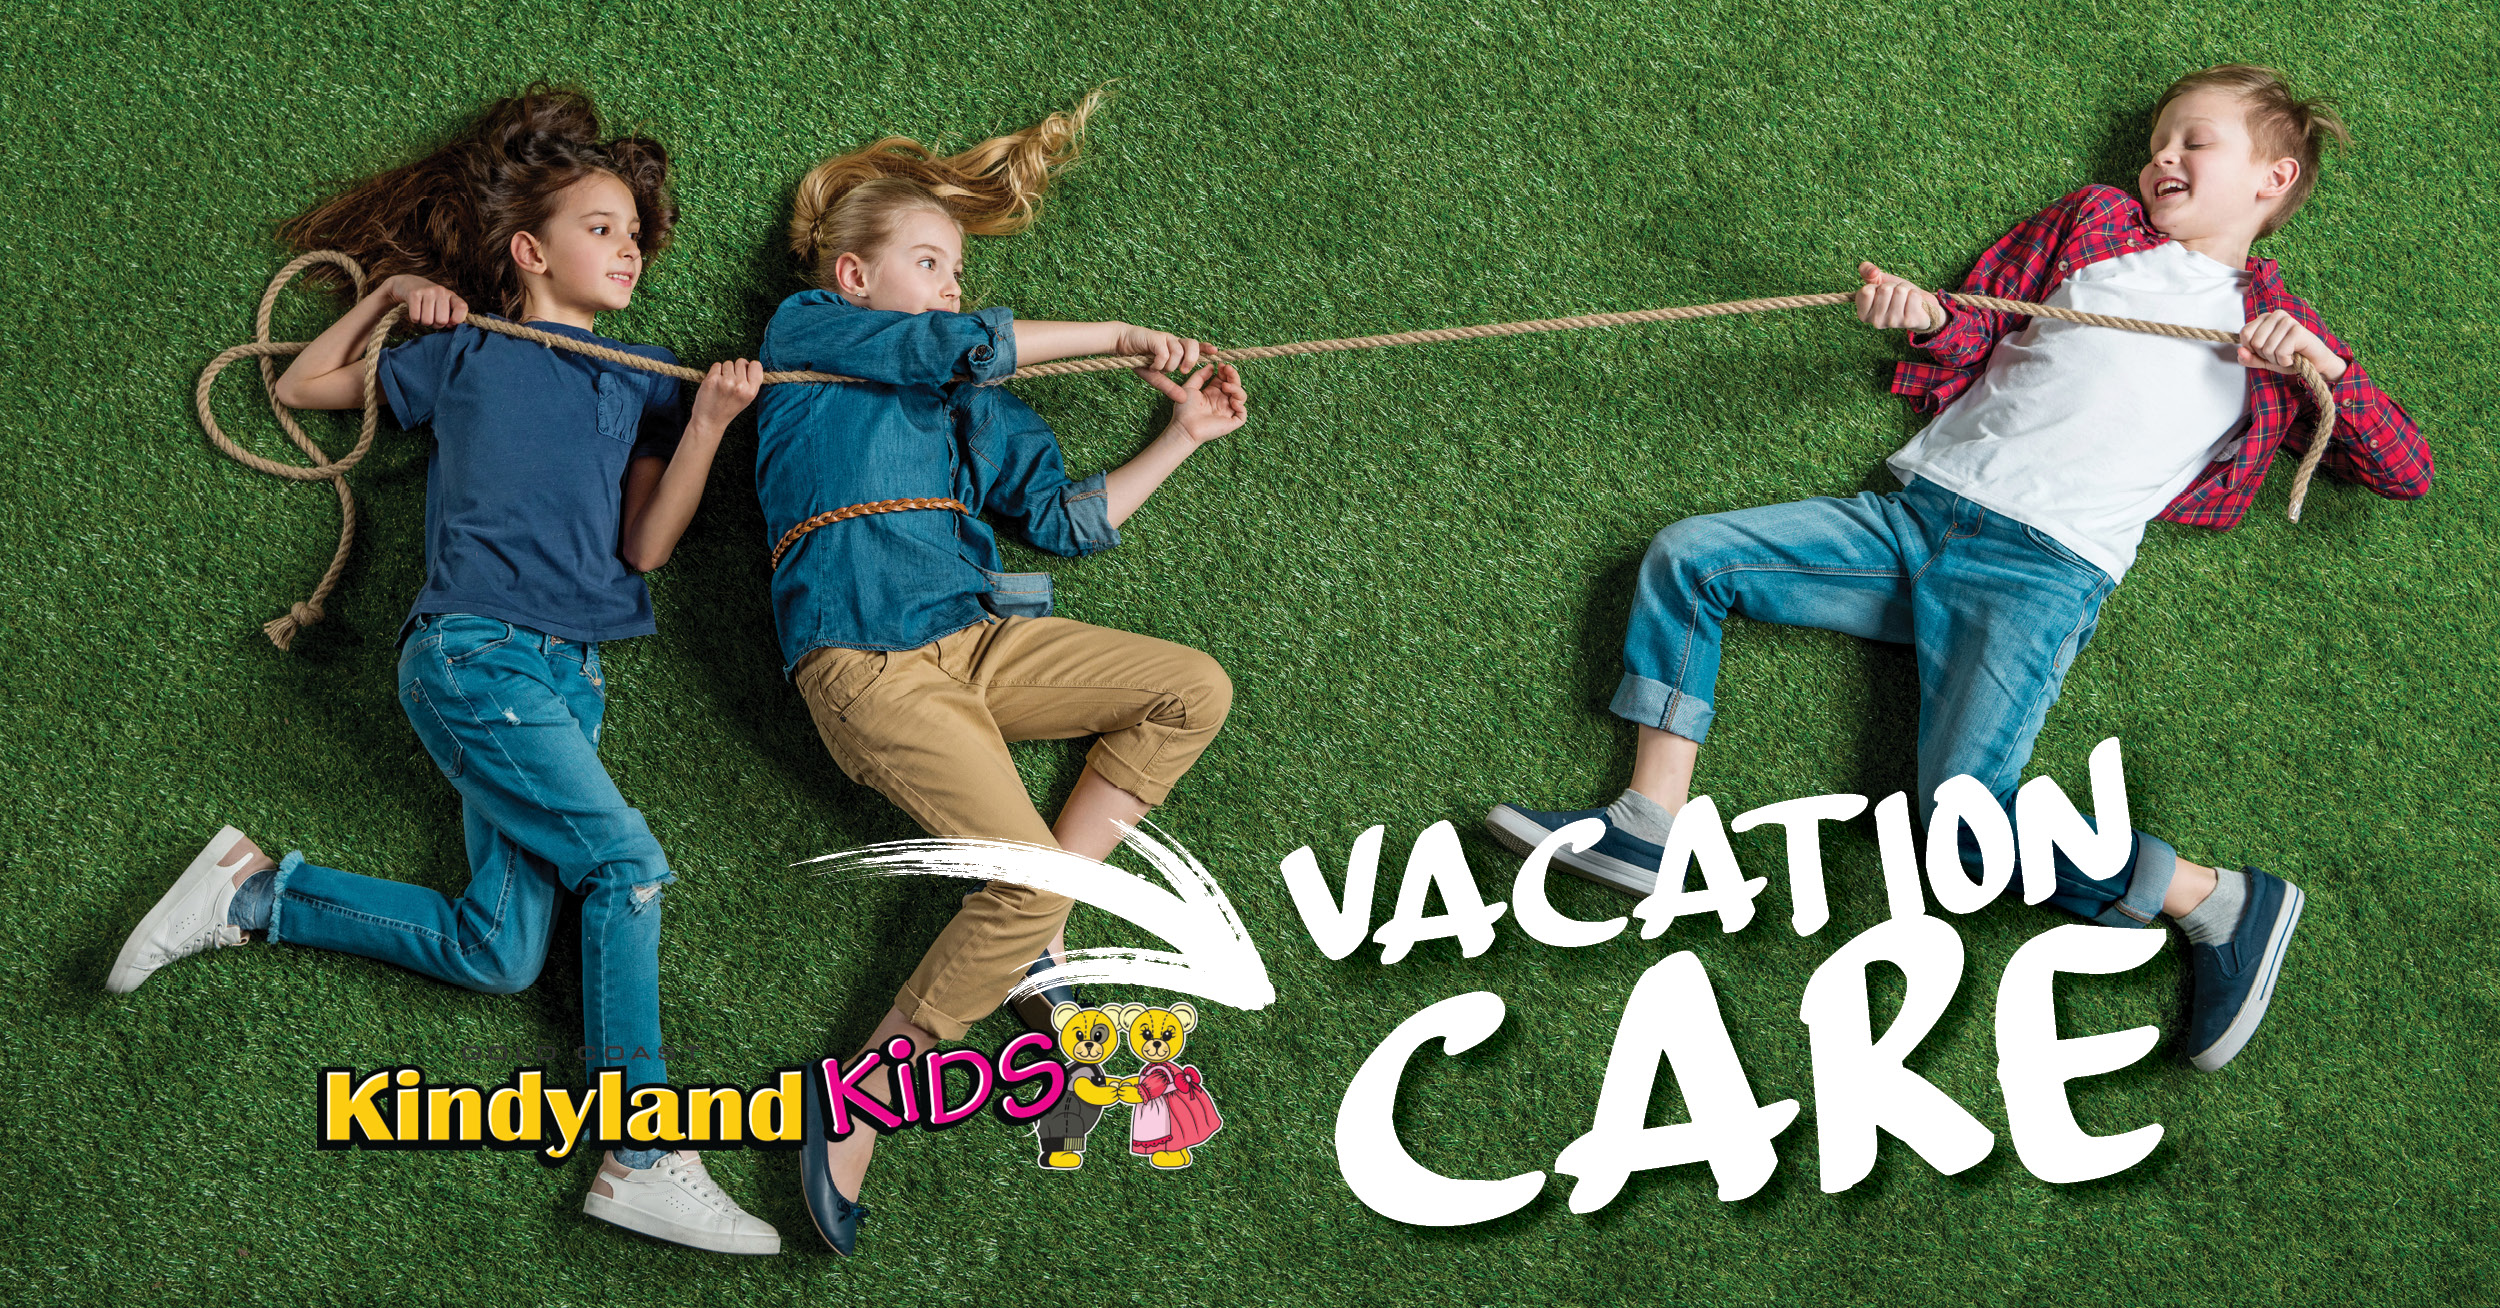 Vacation Care Oct 2018 - Ad tile